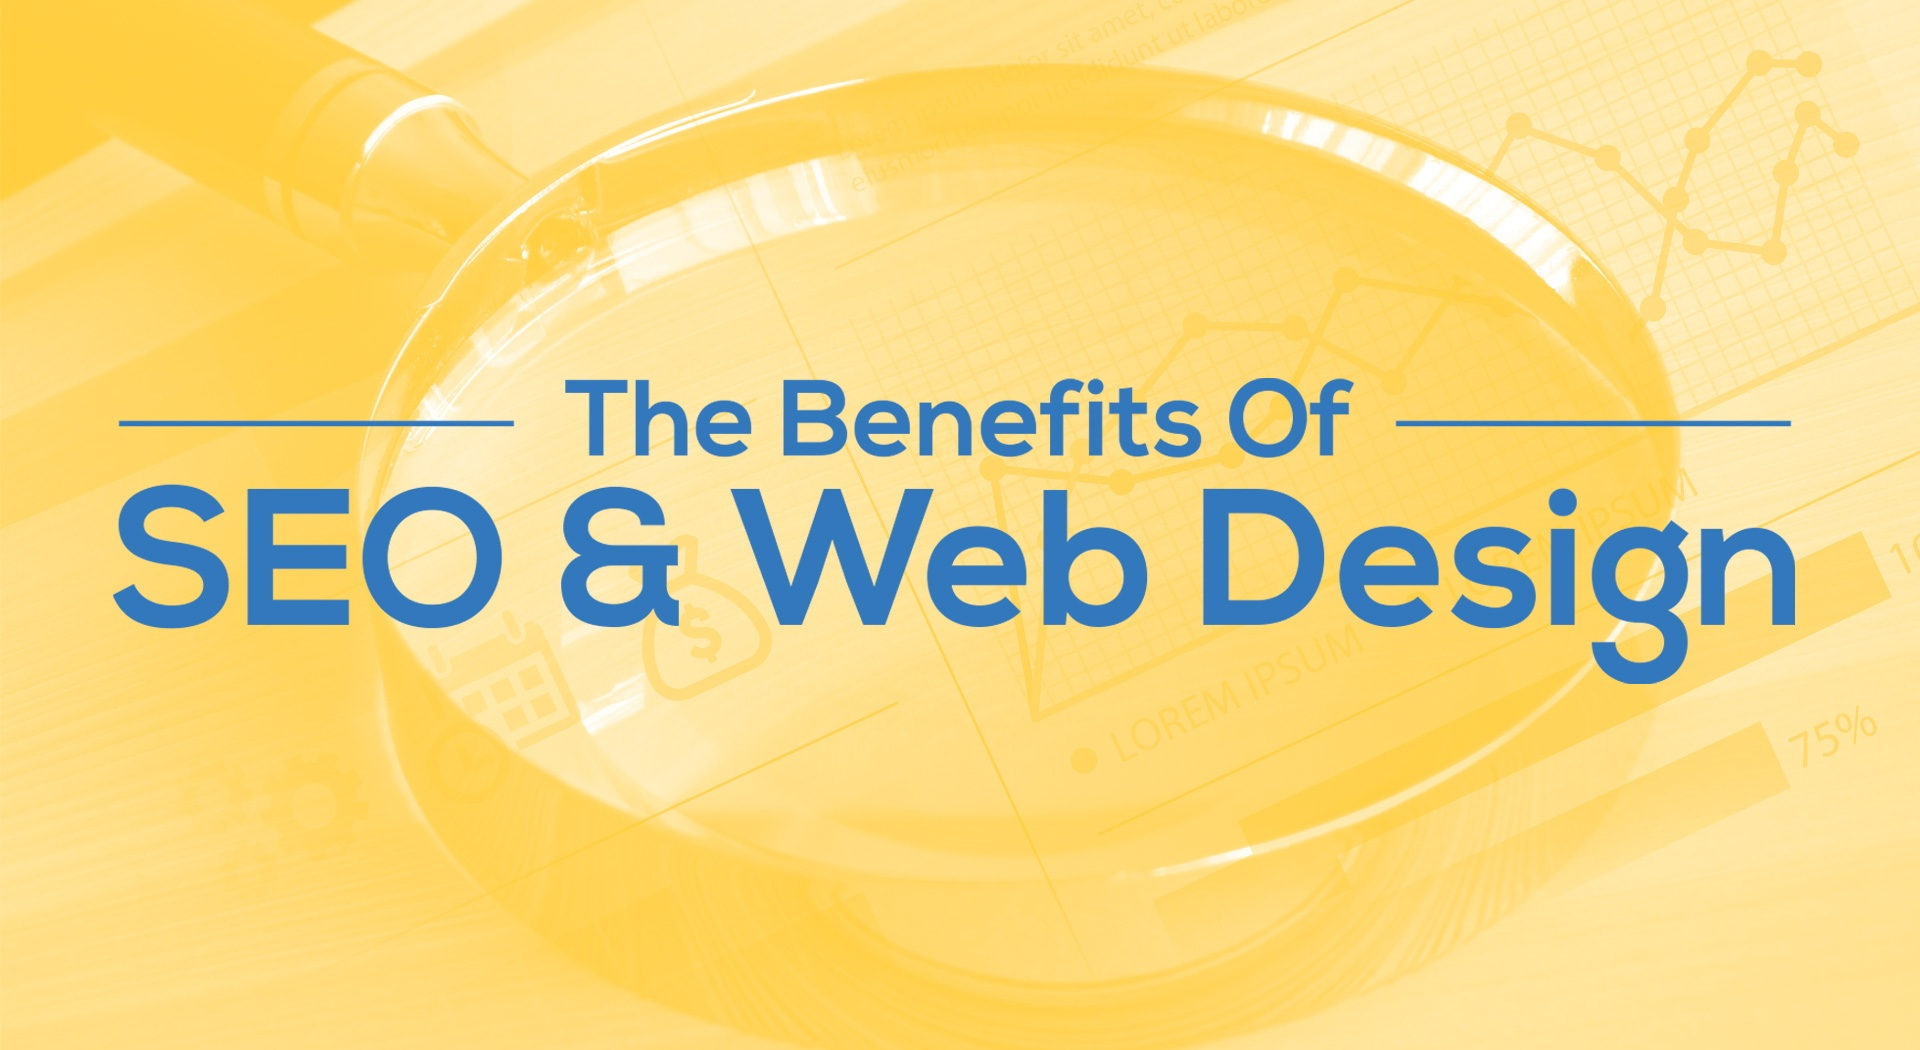 The Benefits of SEO & Web Design